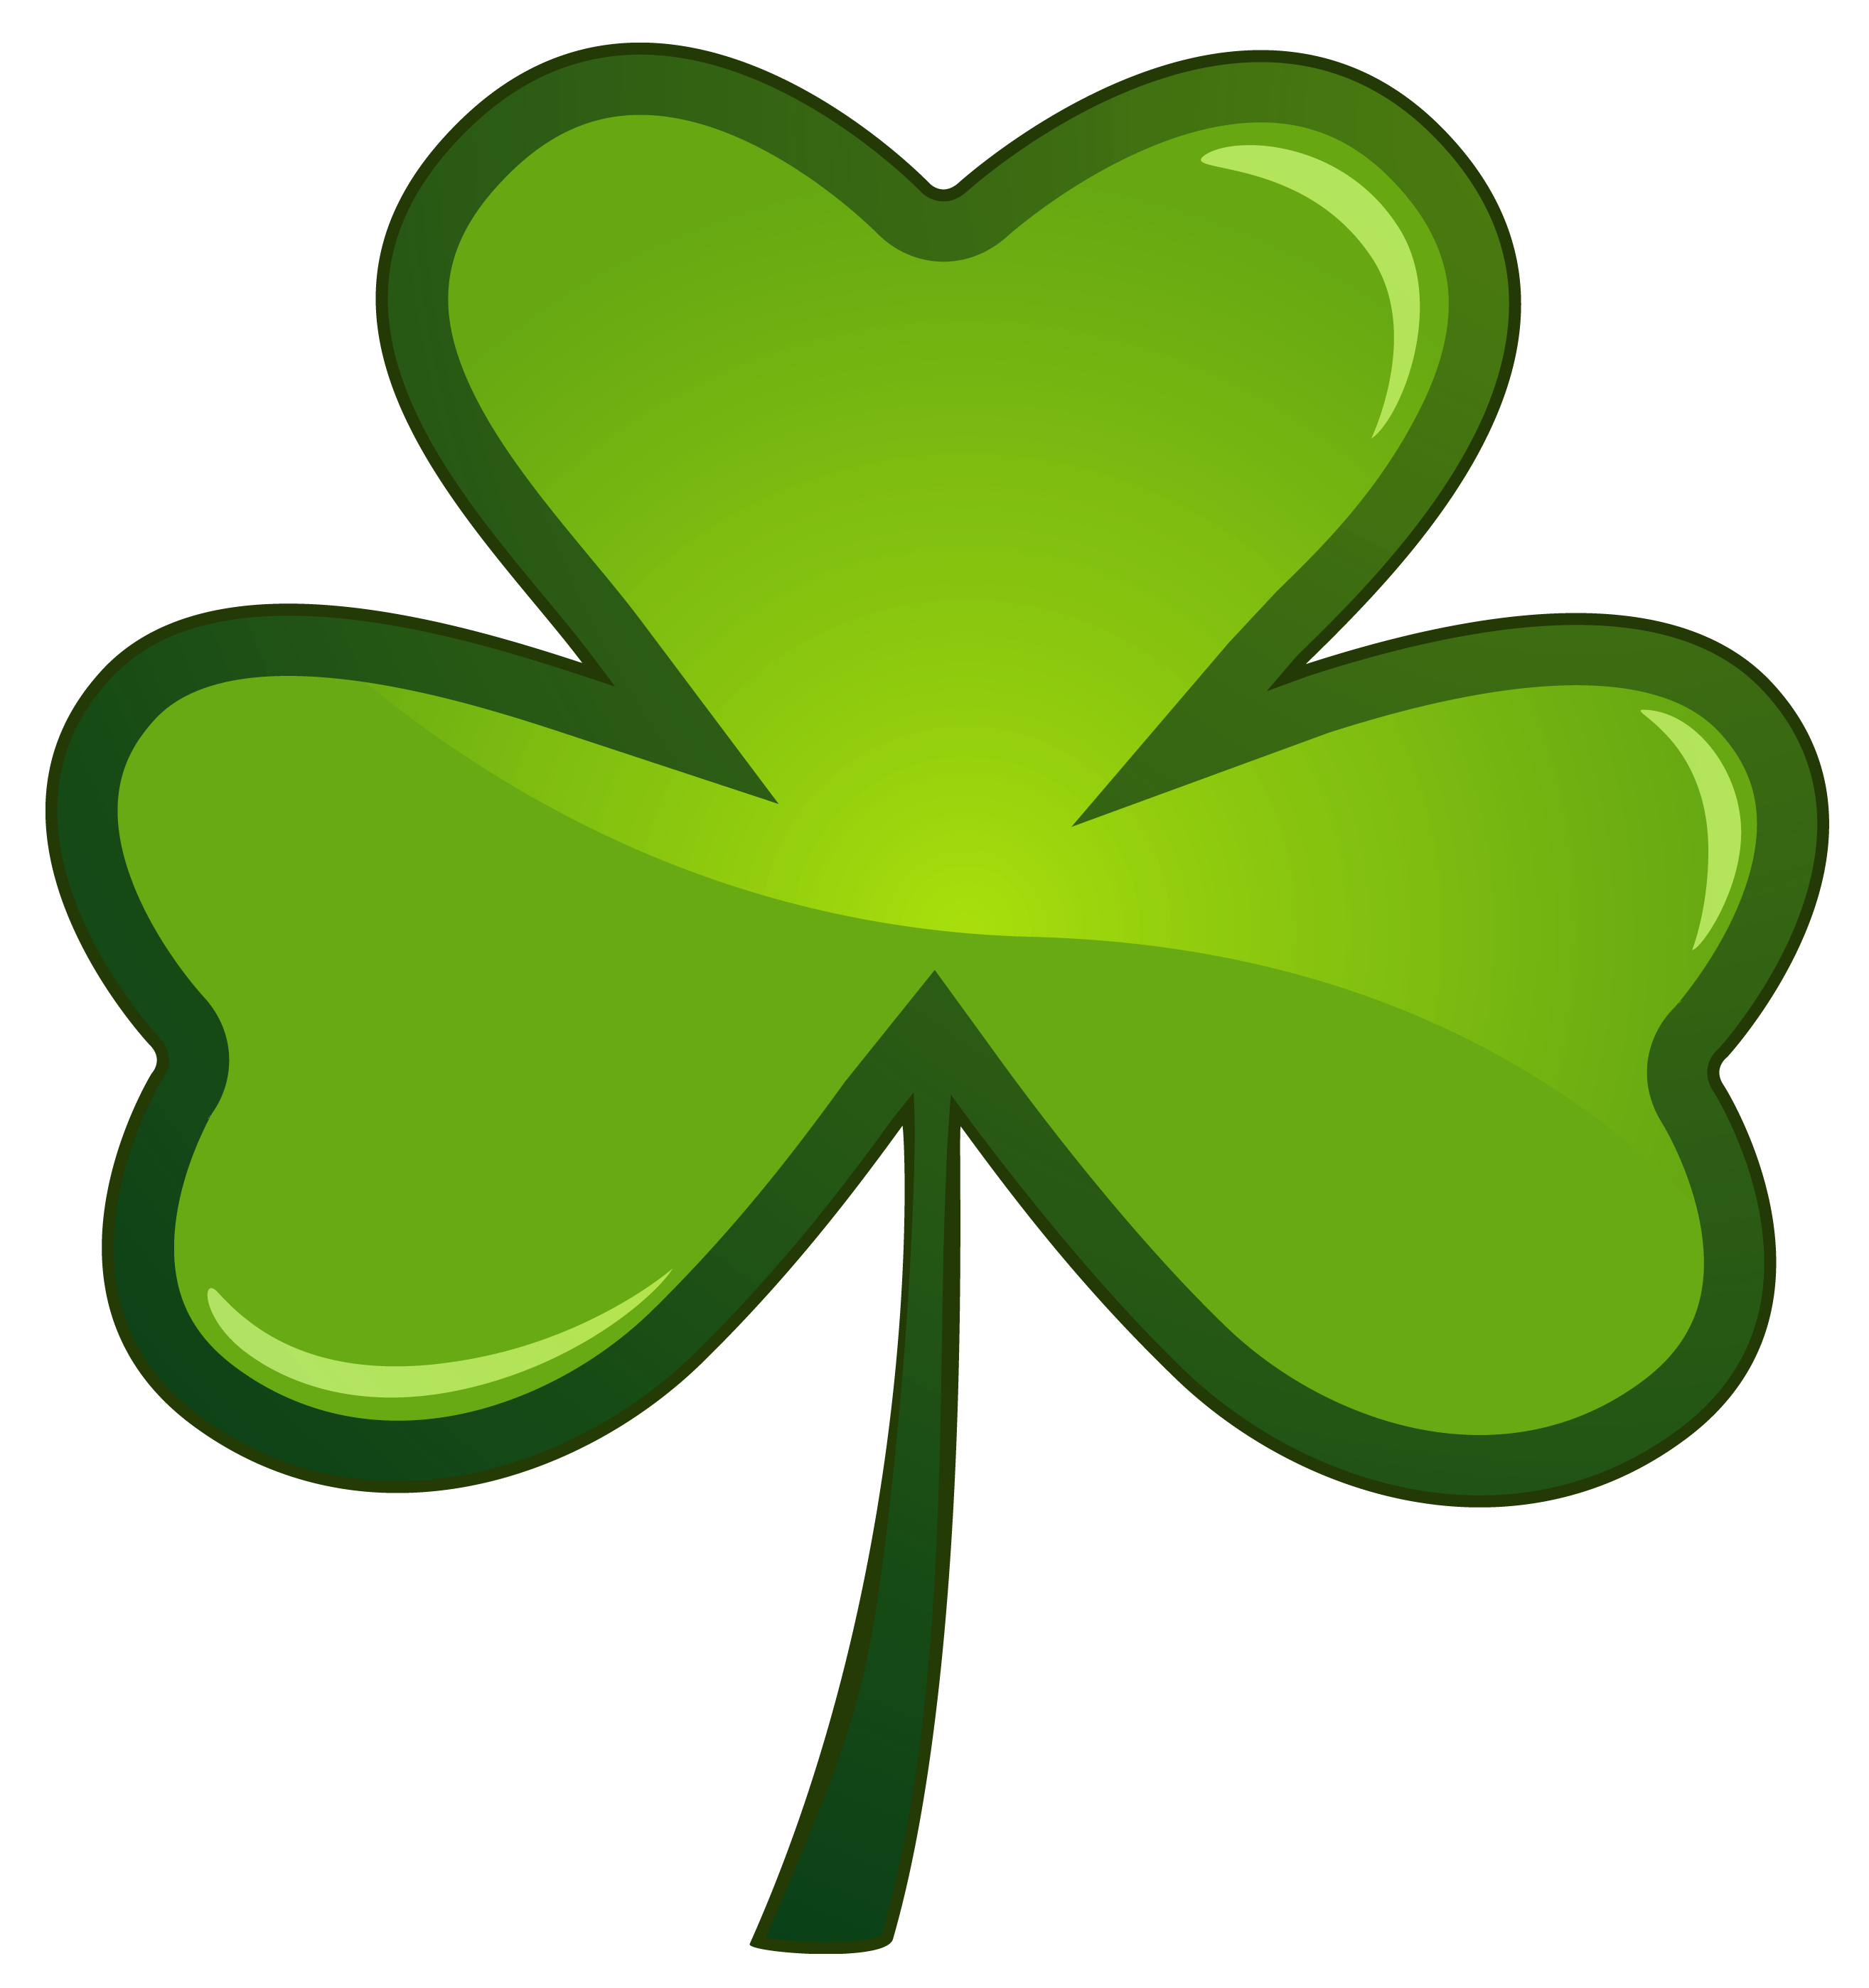 2017 clipart st patrick's day. Patrick s airfield estate